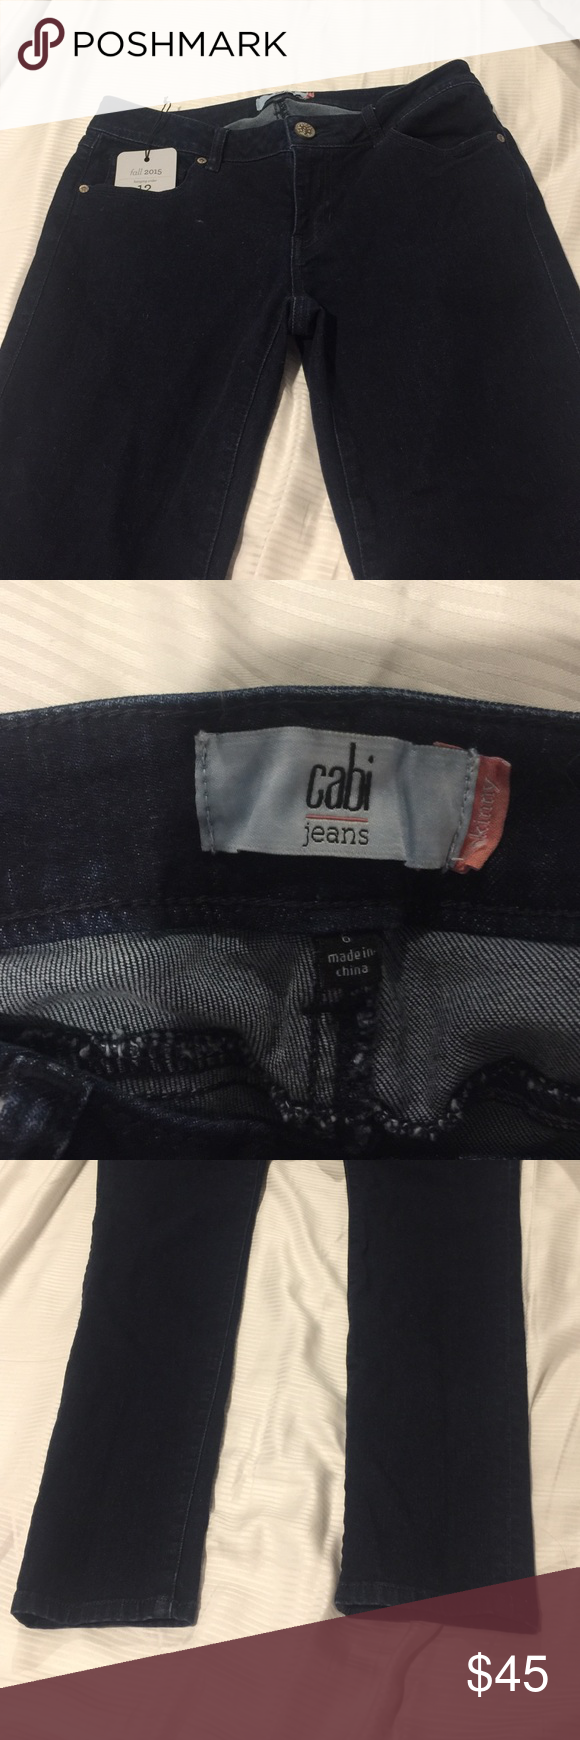 Cabi Knight Skinny Jeans size 6 Brand New washed once never worn Cabi Knight Skinny Jean from the Fall 2015 collection! 98% cotton 2 % spandex. Size 6 CAbi Jeans Skinny